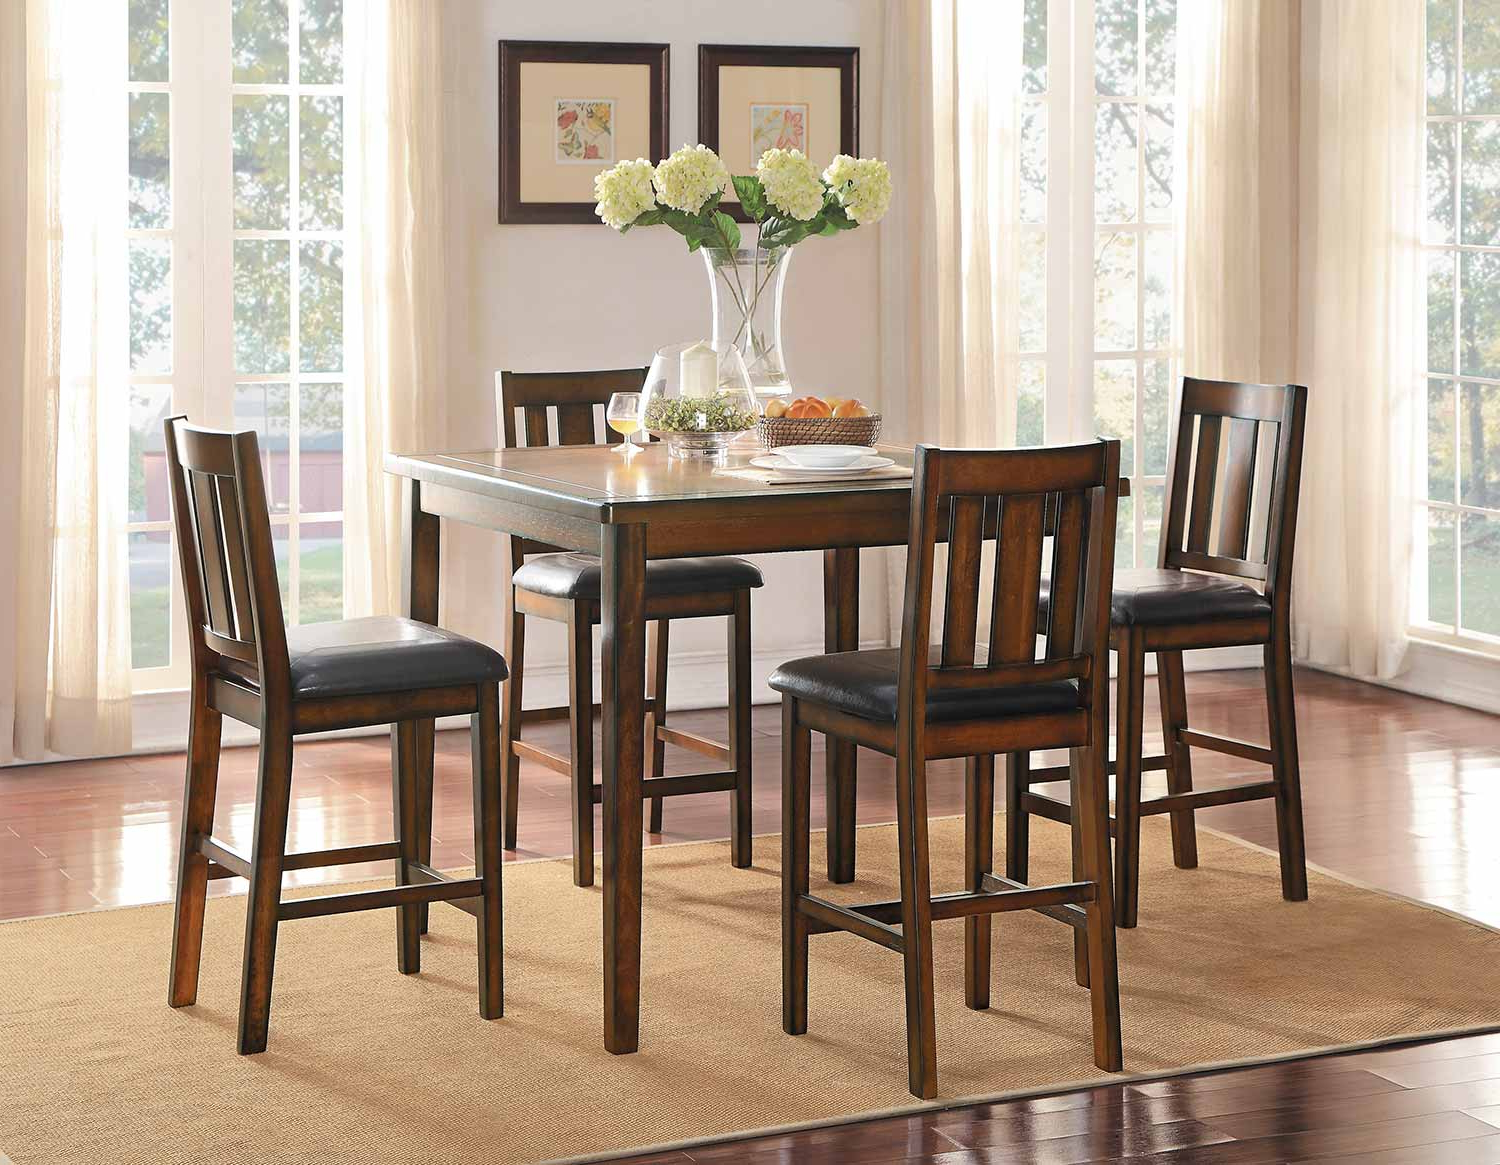 Fashionable Homelegance Delmar 5 Piece Pack Counter Height Dining Set – Burnish Finish Throughout Delmar 5 Piece Dining Sets (View 3 of 20)